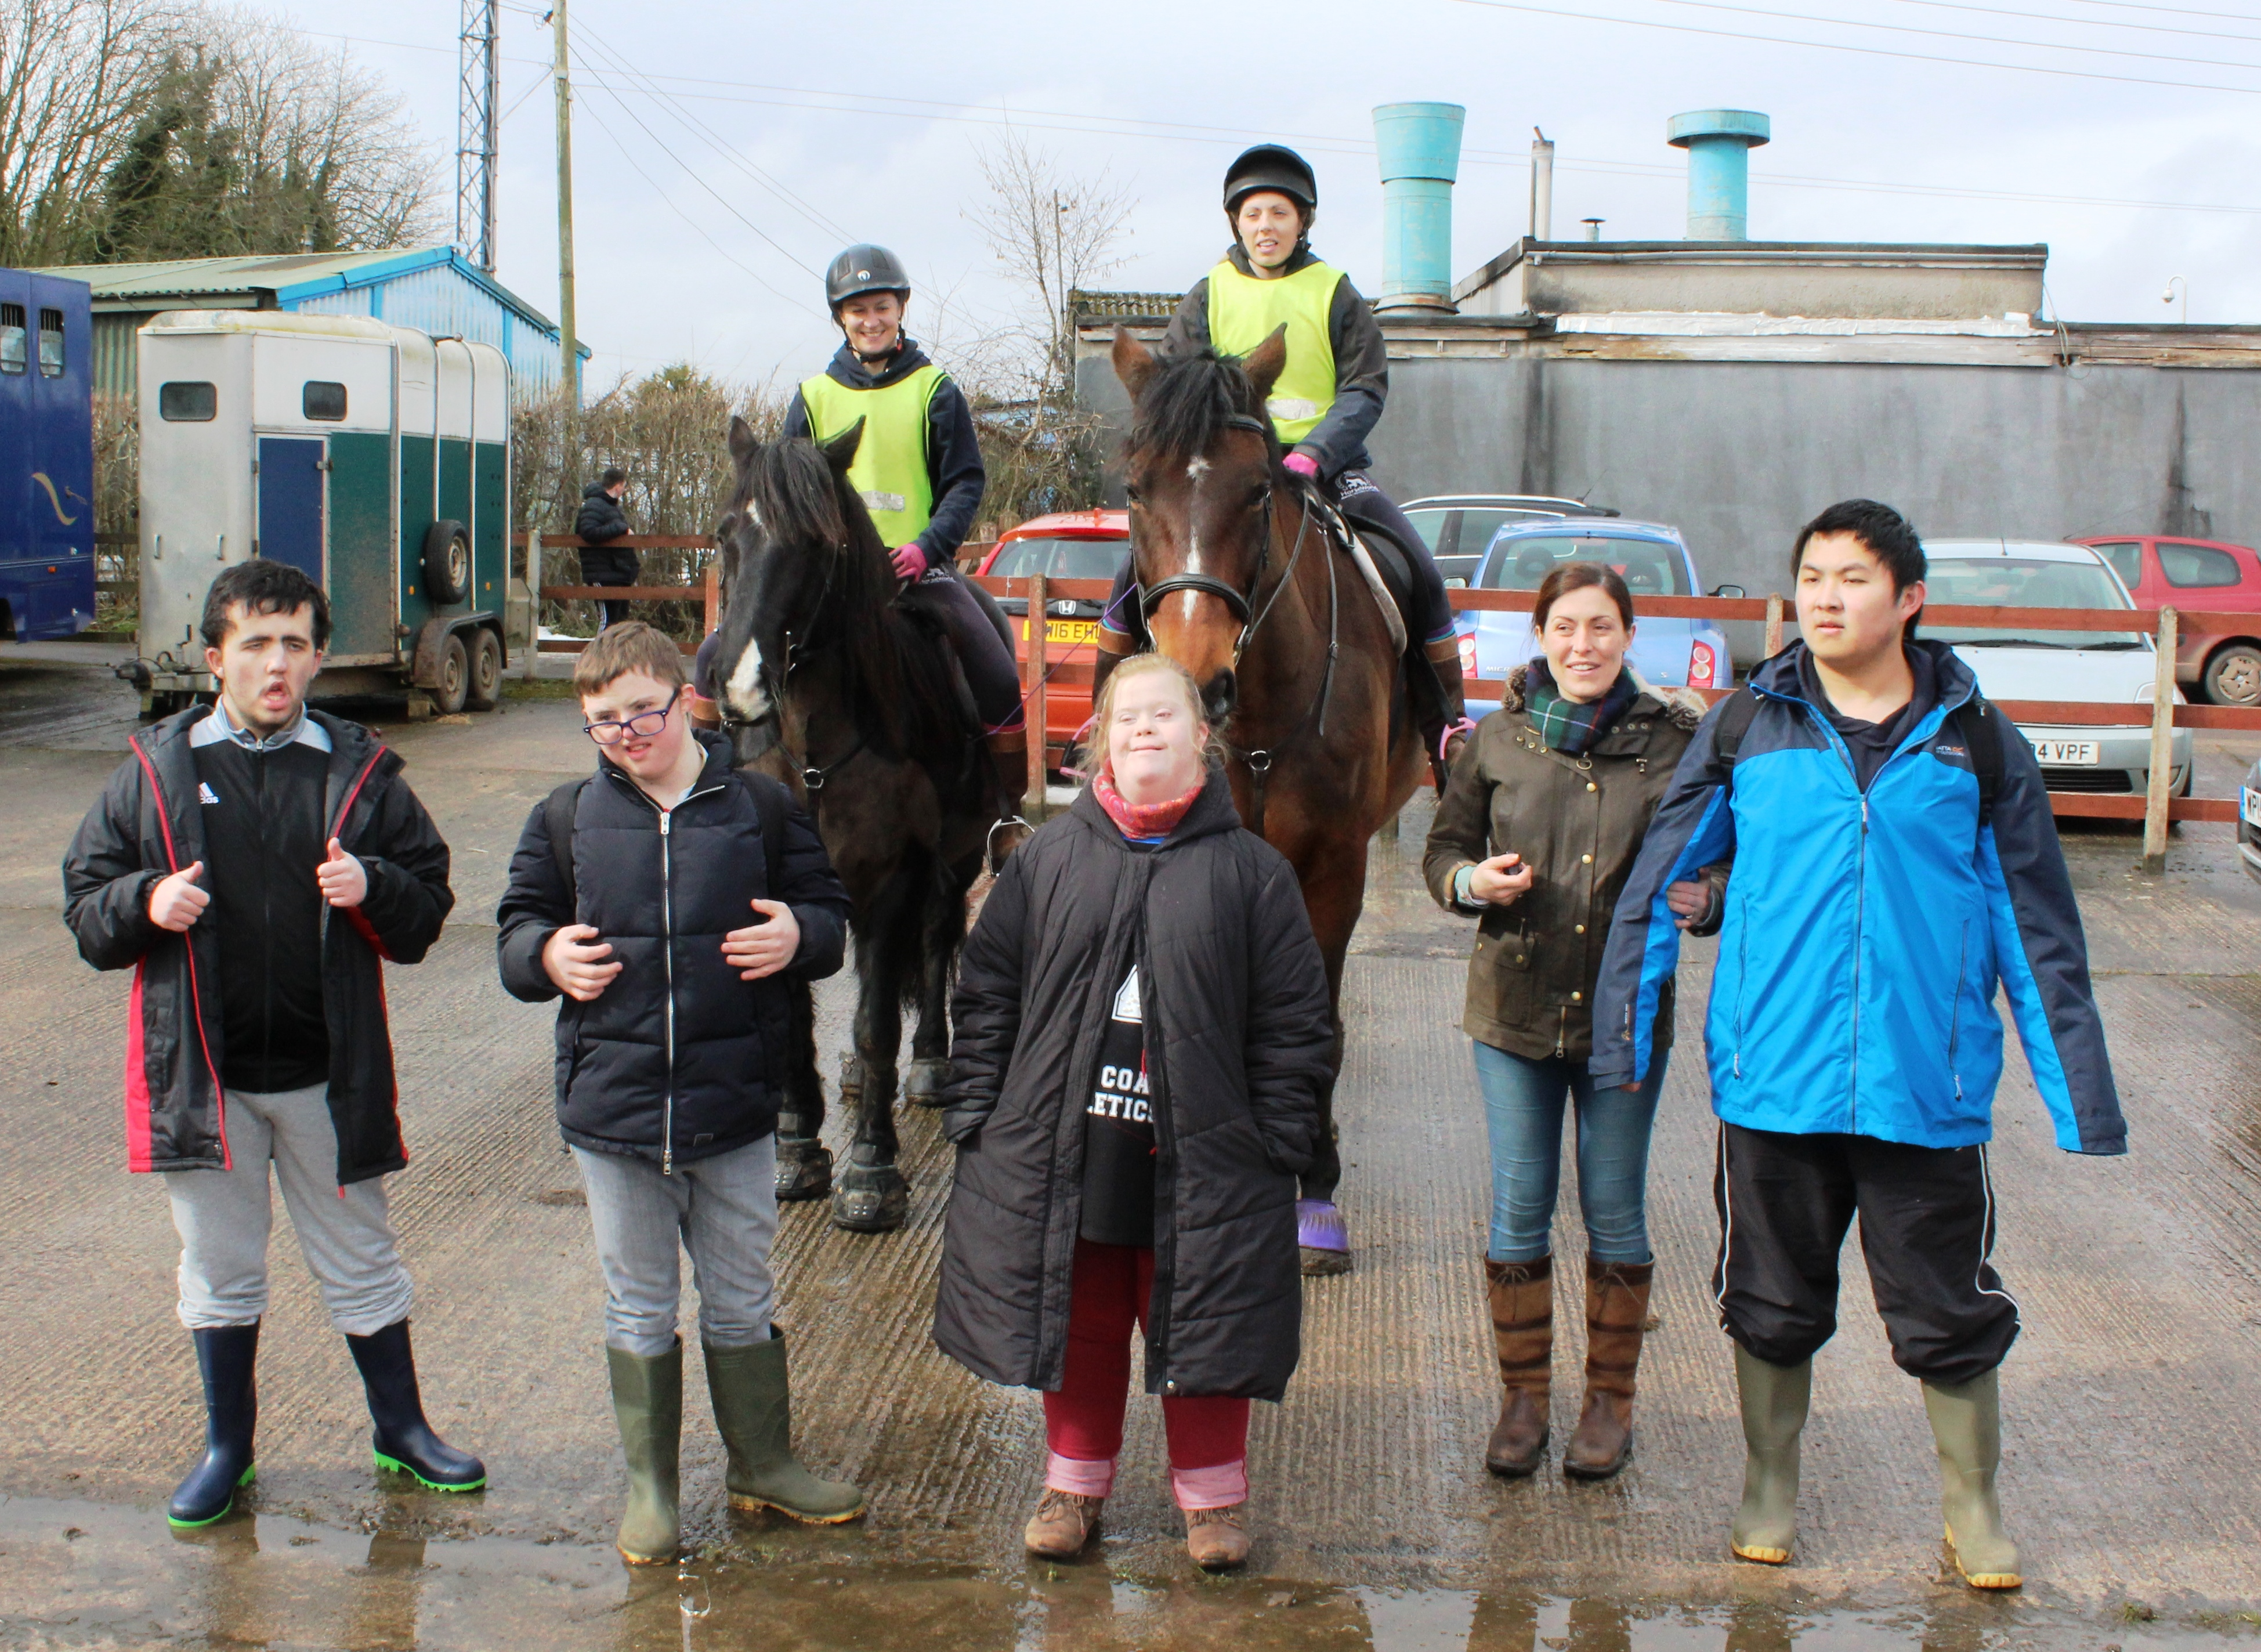 The students from Poplar college meeting two of the trainers and horses Gunner ridden by Caitlin (L) and Quinn ridden by Kayleigh (R). Students from left to right are; Owen, James Rhyan, Teacher- Deborah Fay and Ben